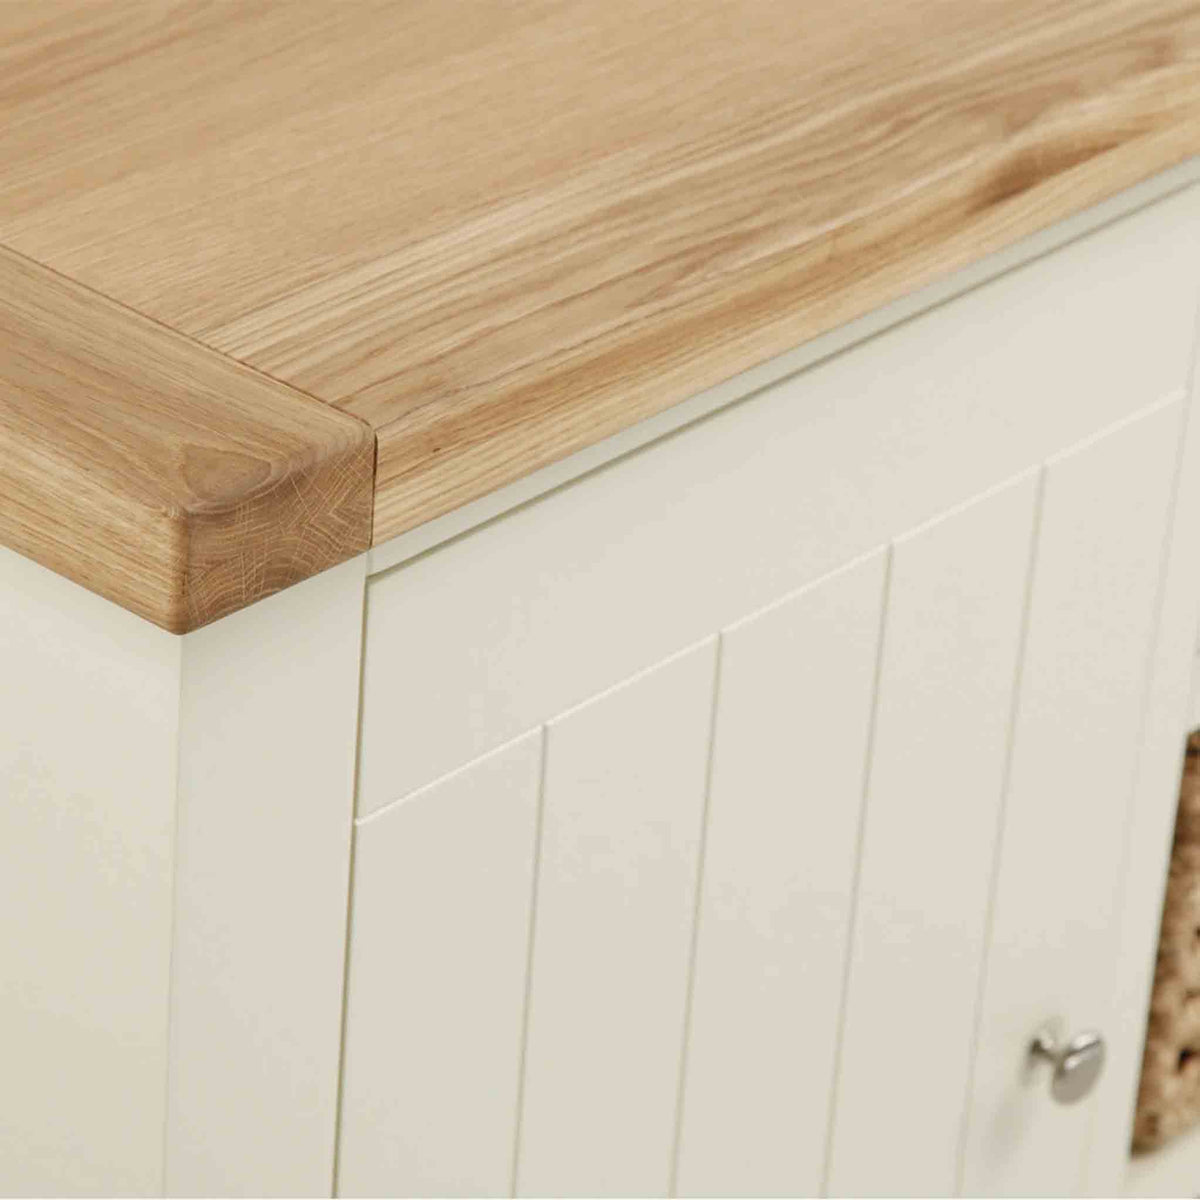 Close up of tabletop surface of The Daymer Cream Painted Small Oak Sideboard Cabinet